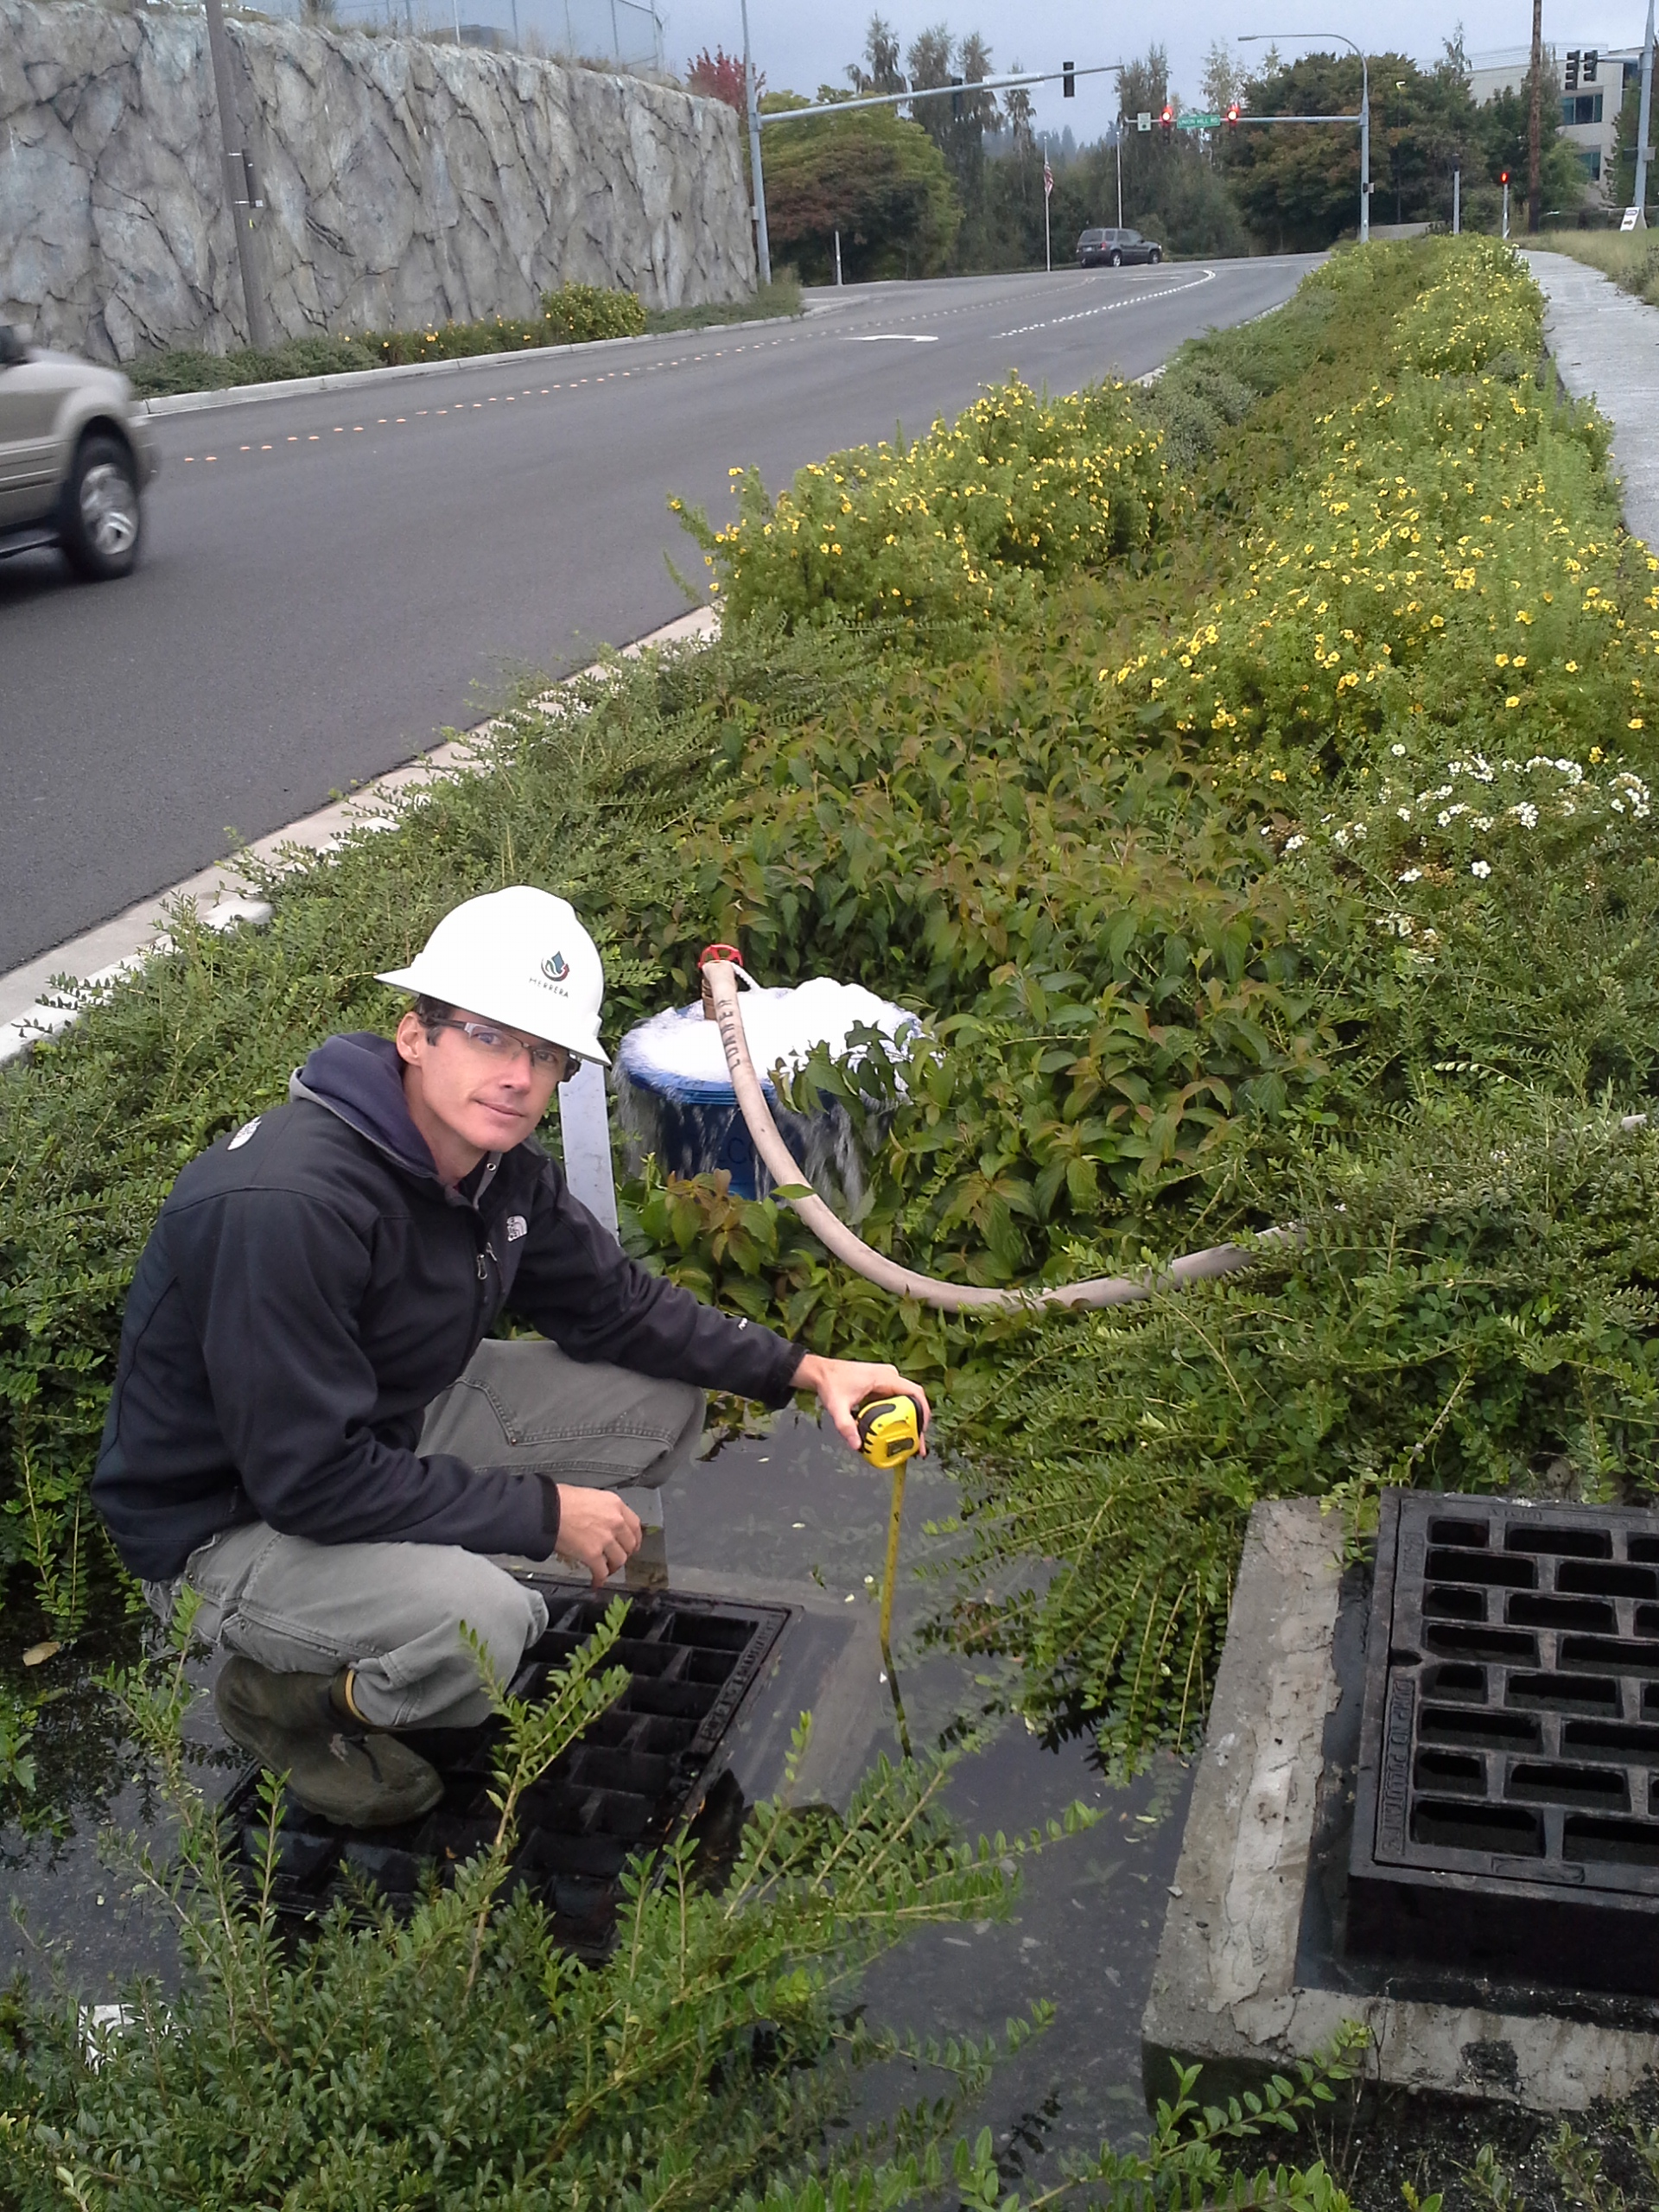 Measuring infiltration rates at 185th in Redmond. The study that alerted the region